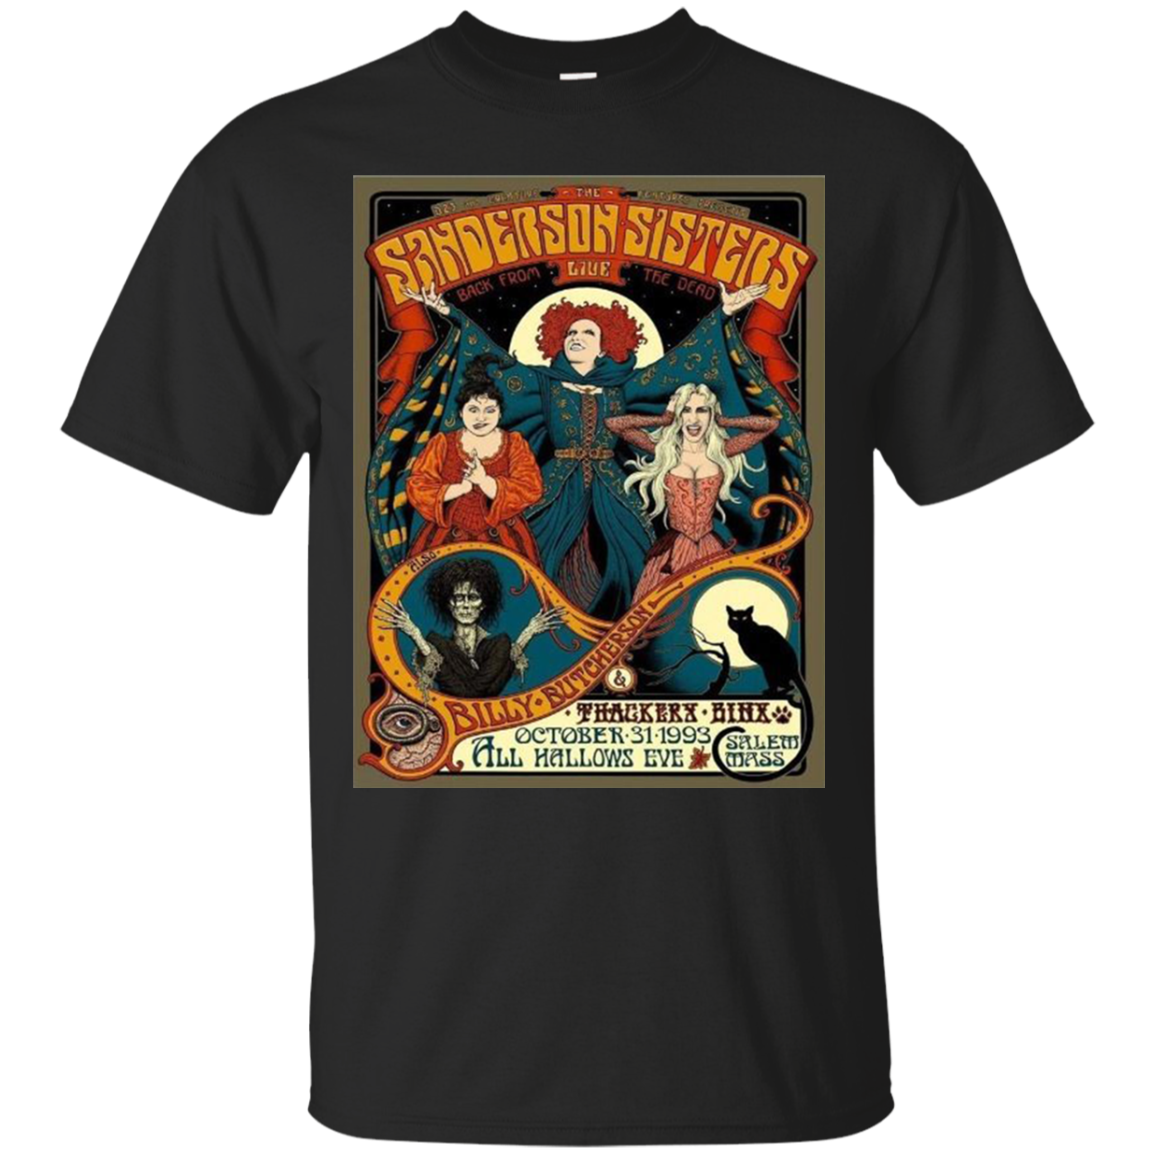 Cover Your Body With Amazing Sanderson Sisters Vintage Tour Poster T Shirt Tula Store